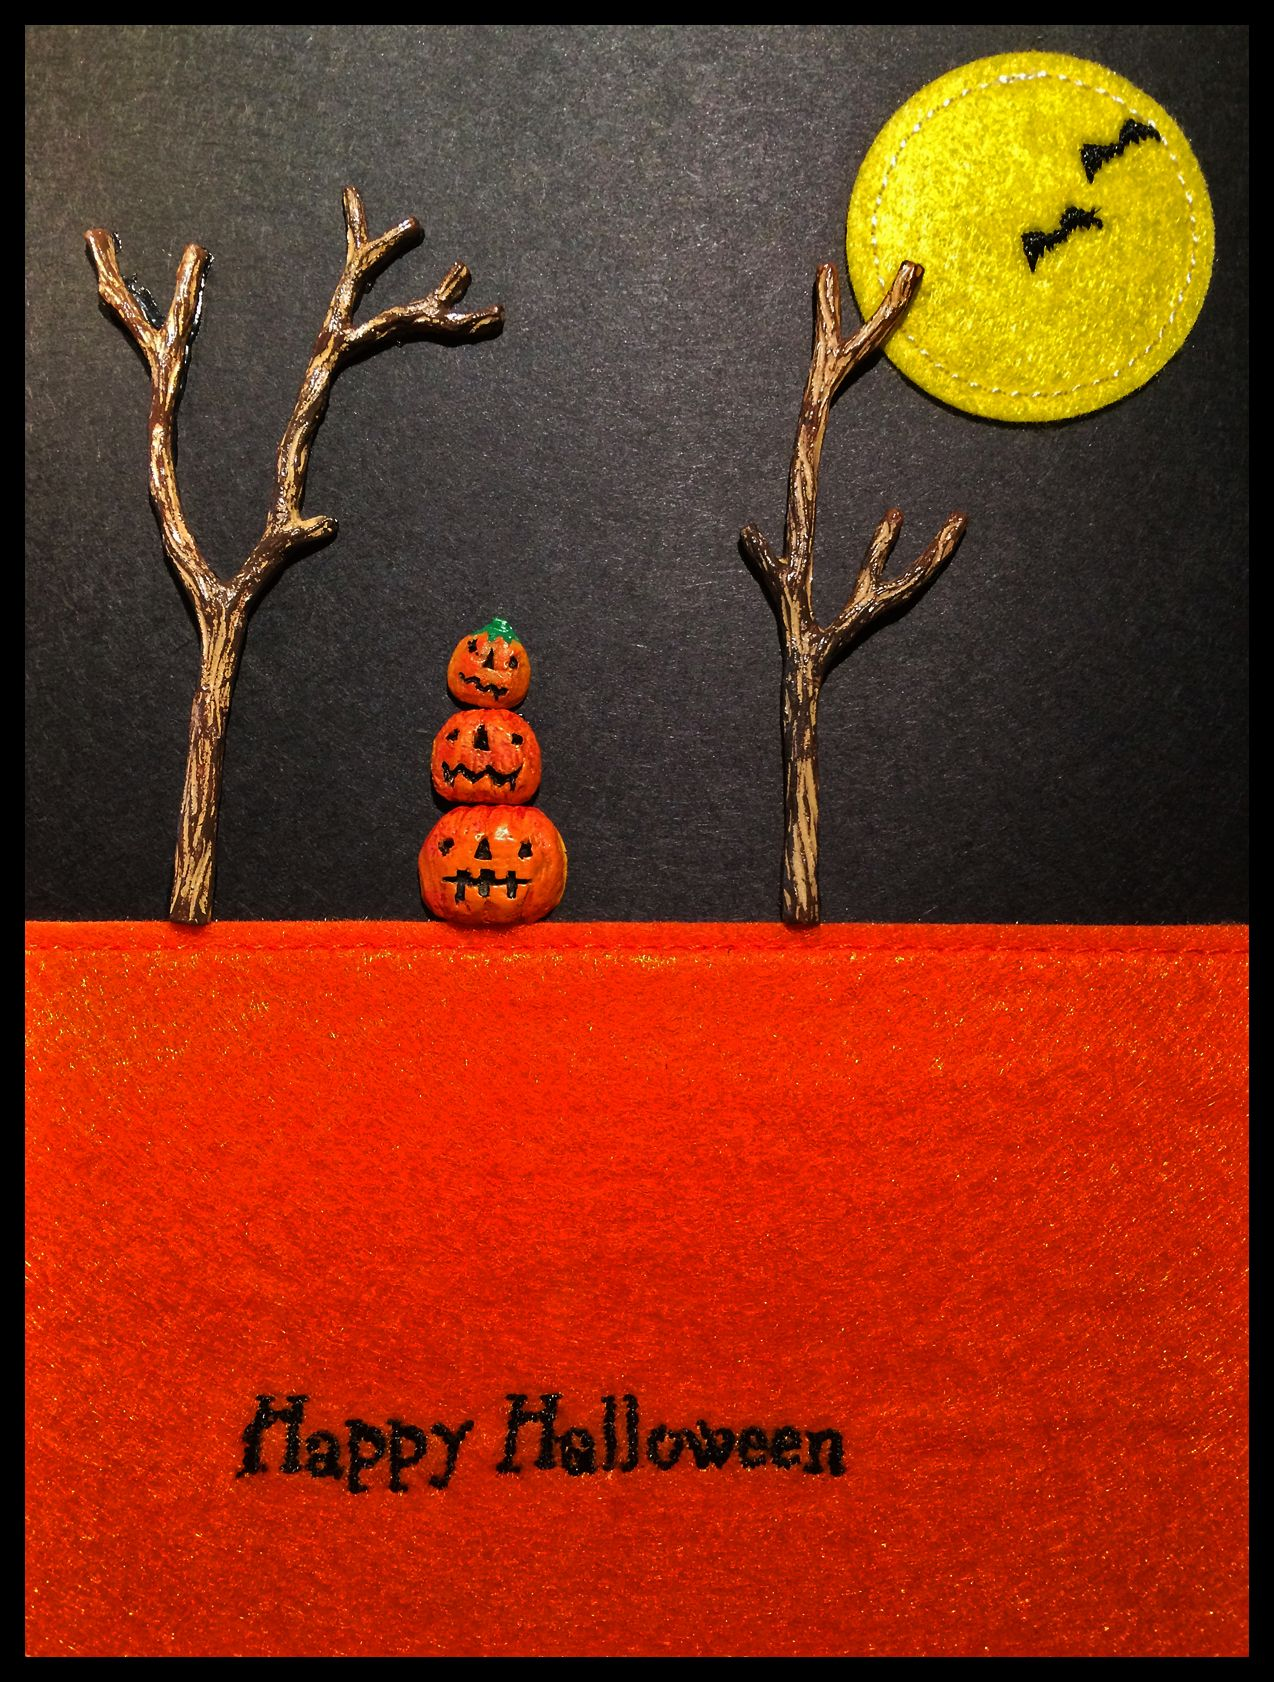 One of our favorite cards from Papyrus. Happy Halloween!